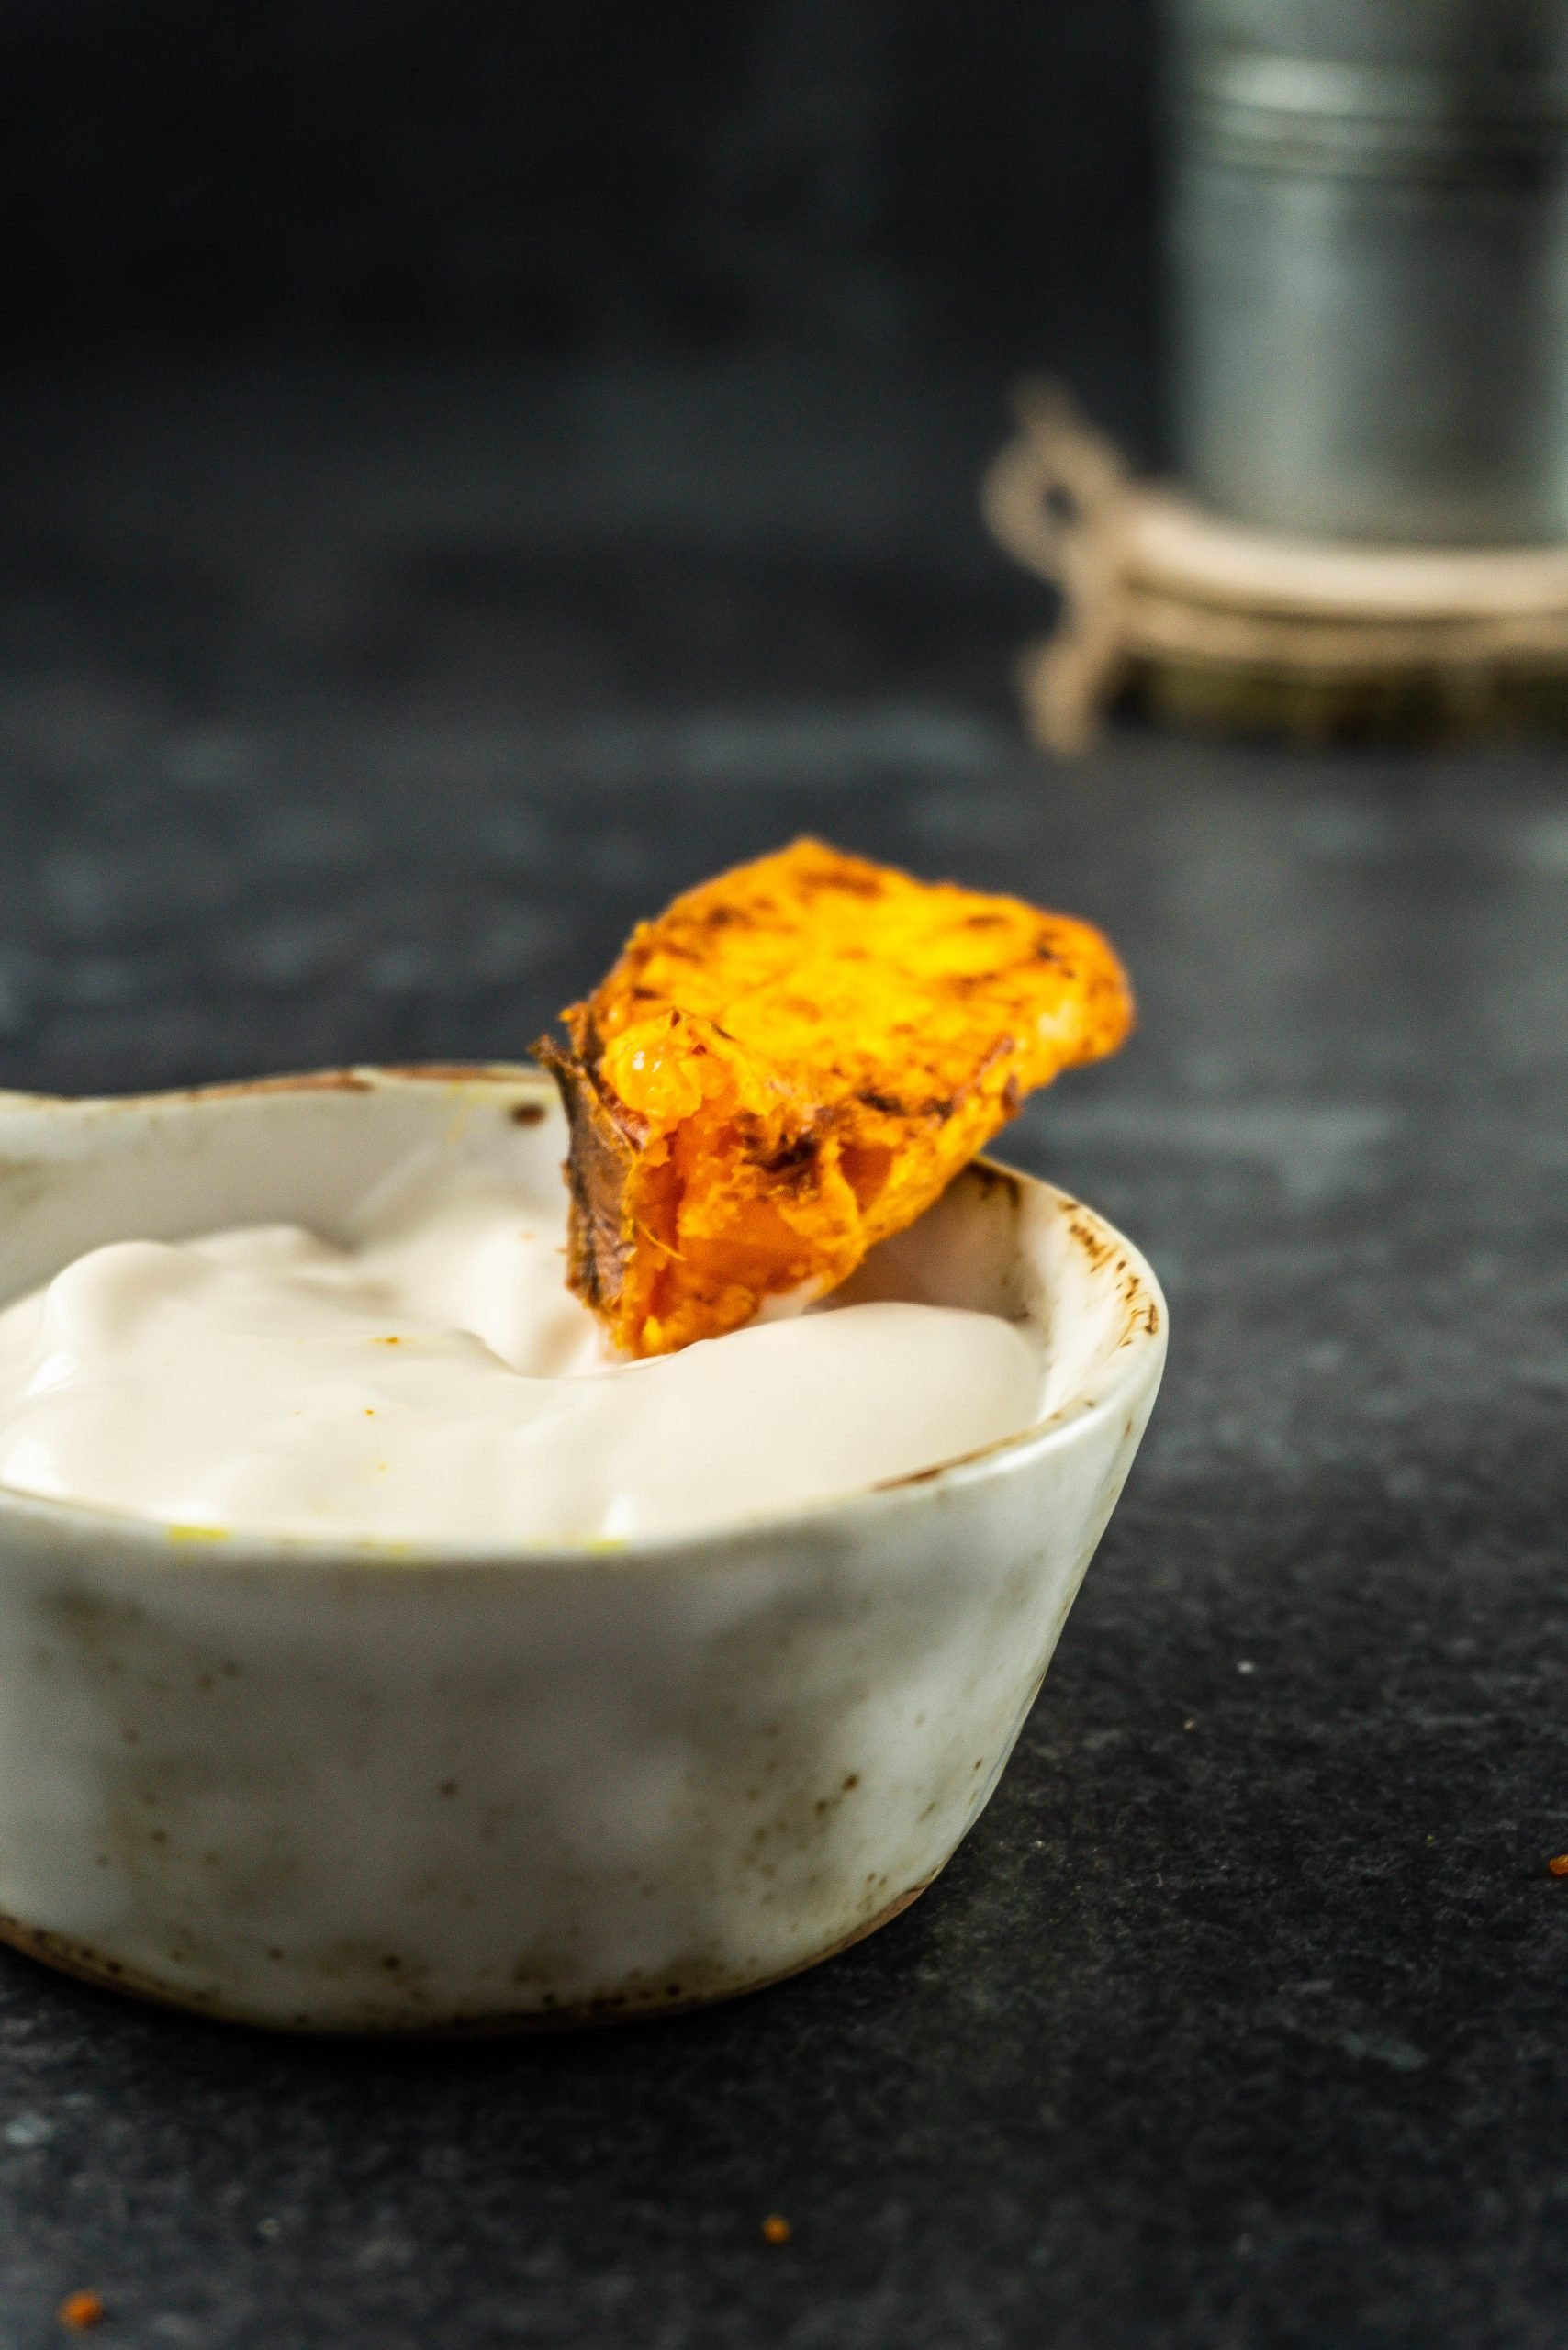 Sweet Potato Wedges being dipped into mayonnaise, photographed from a side angle